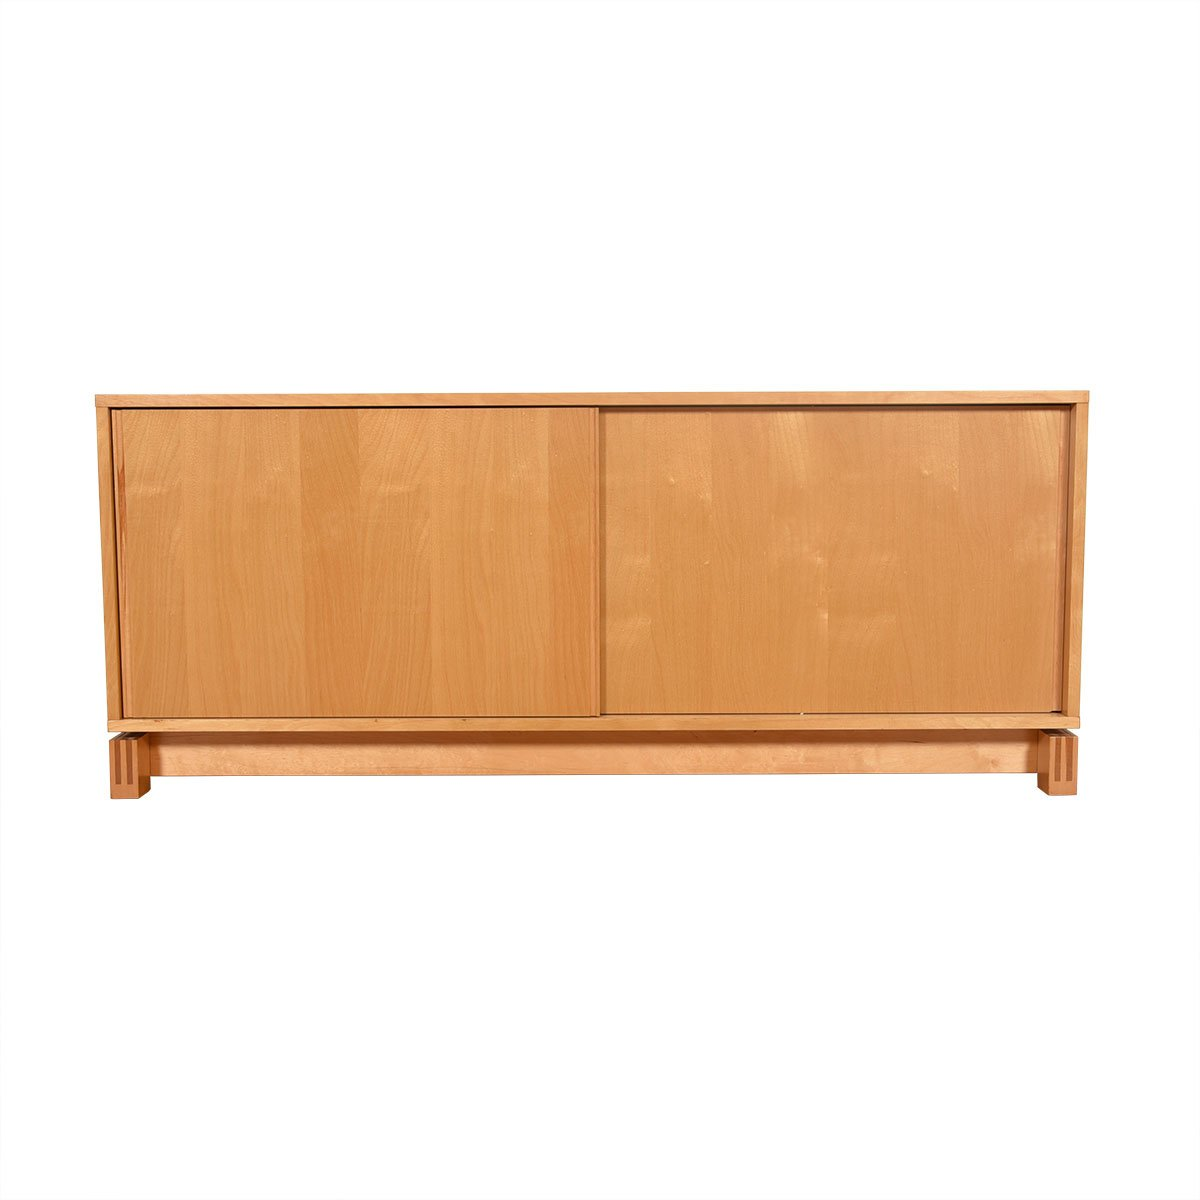 Mid-Century Modern Sliding Door Media Sideboard